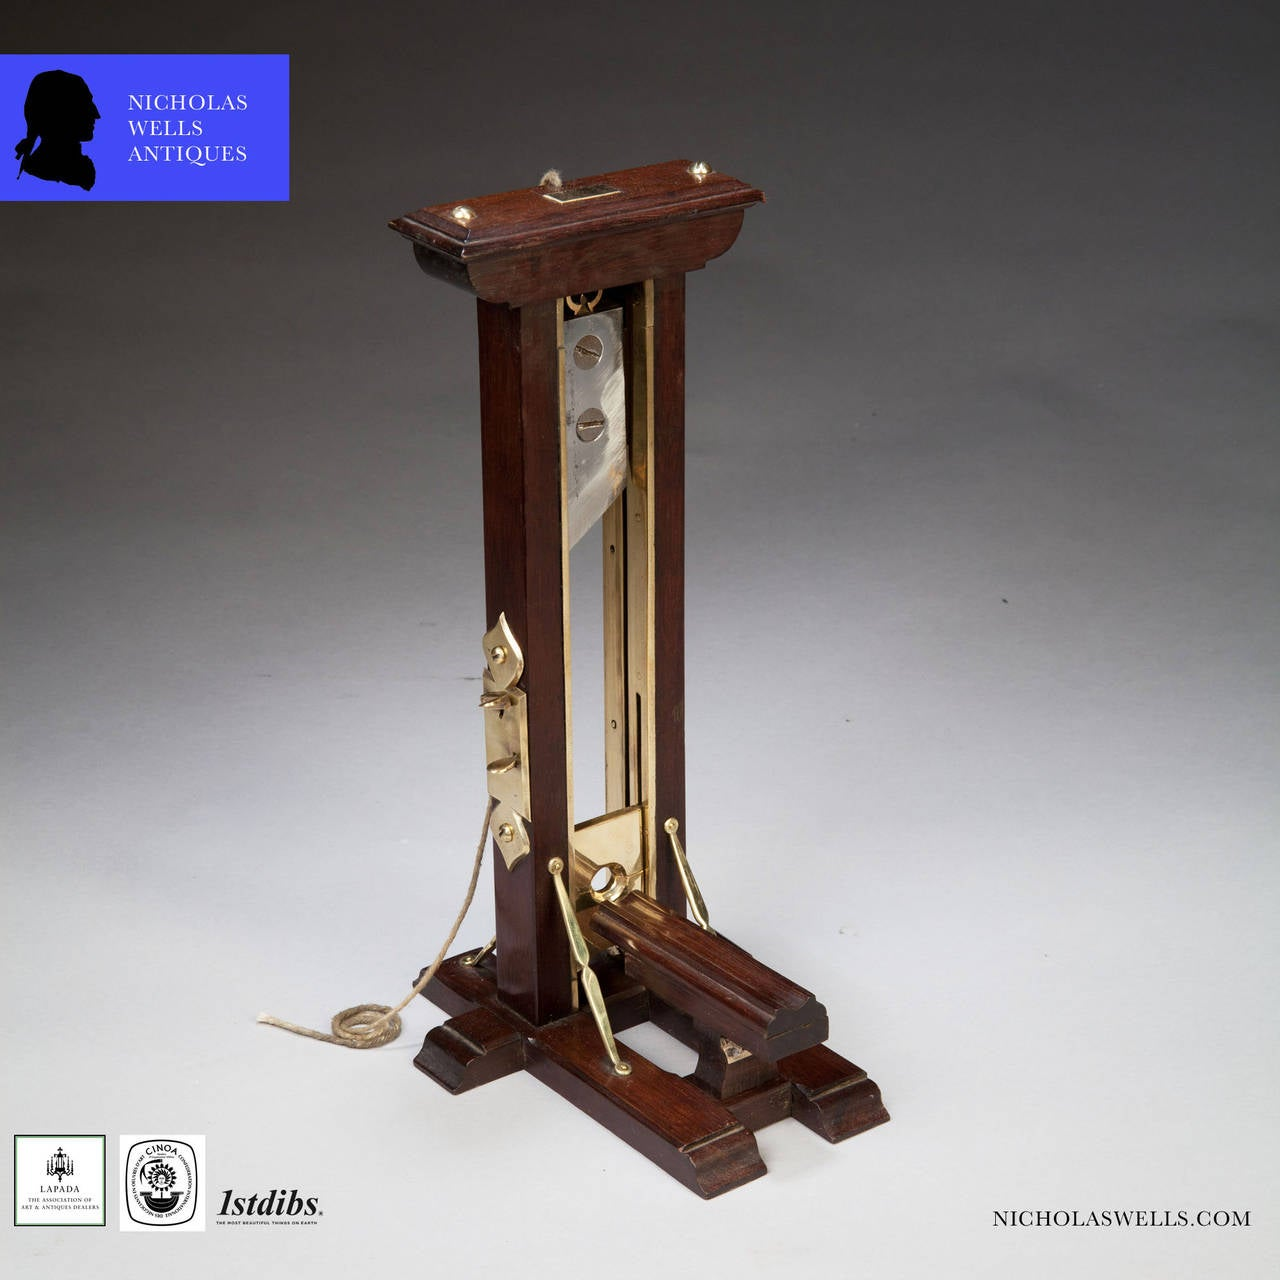 An Ile du Diable prisoner of war mahogany and brass cigar cutter made in the form of a guillotine.